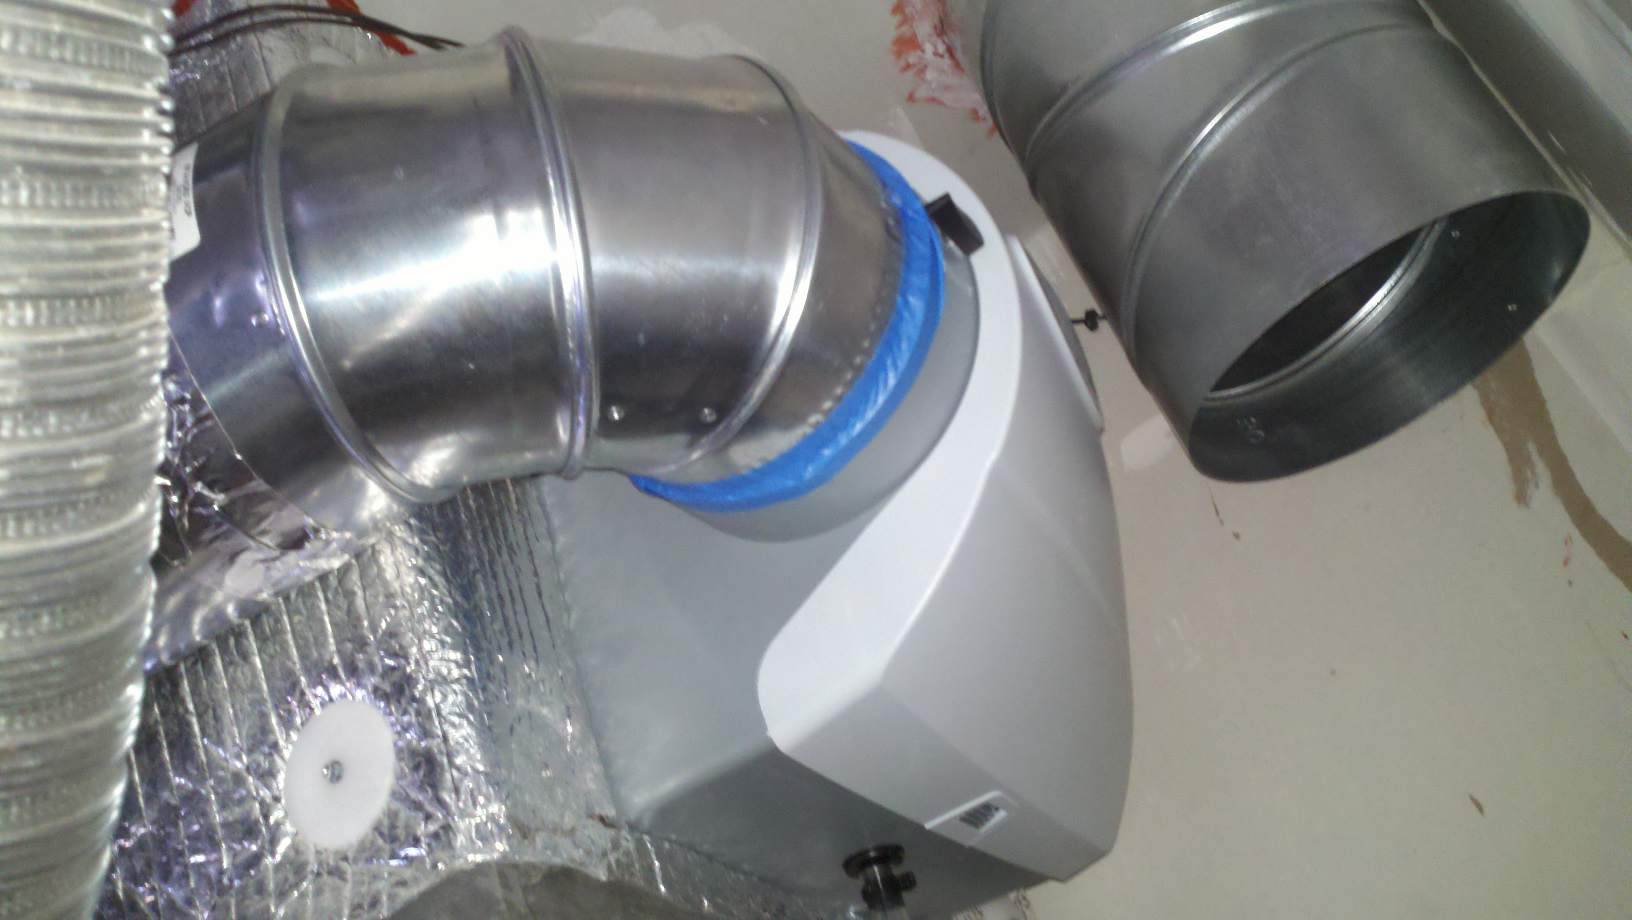 Back flow on Humidifier Bypass-2011-01-27_14-49-02_2371.jpg